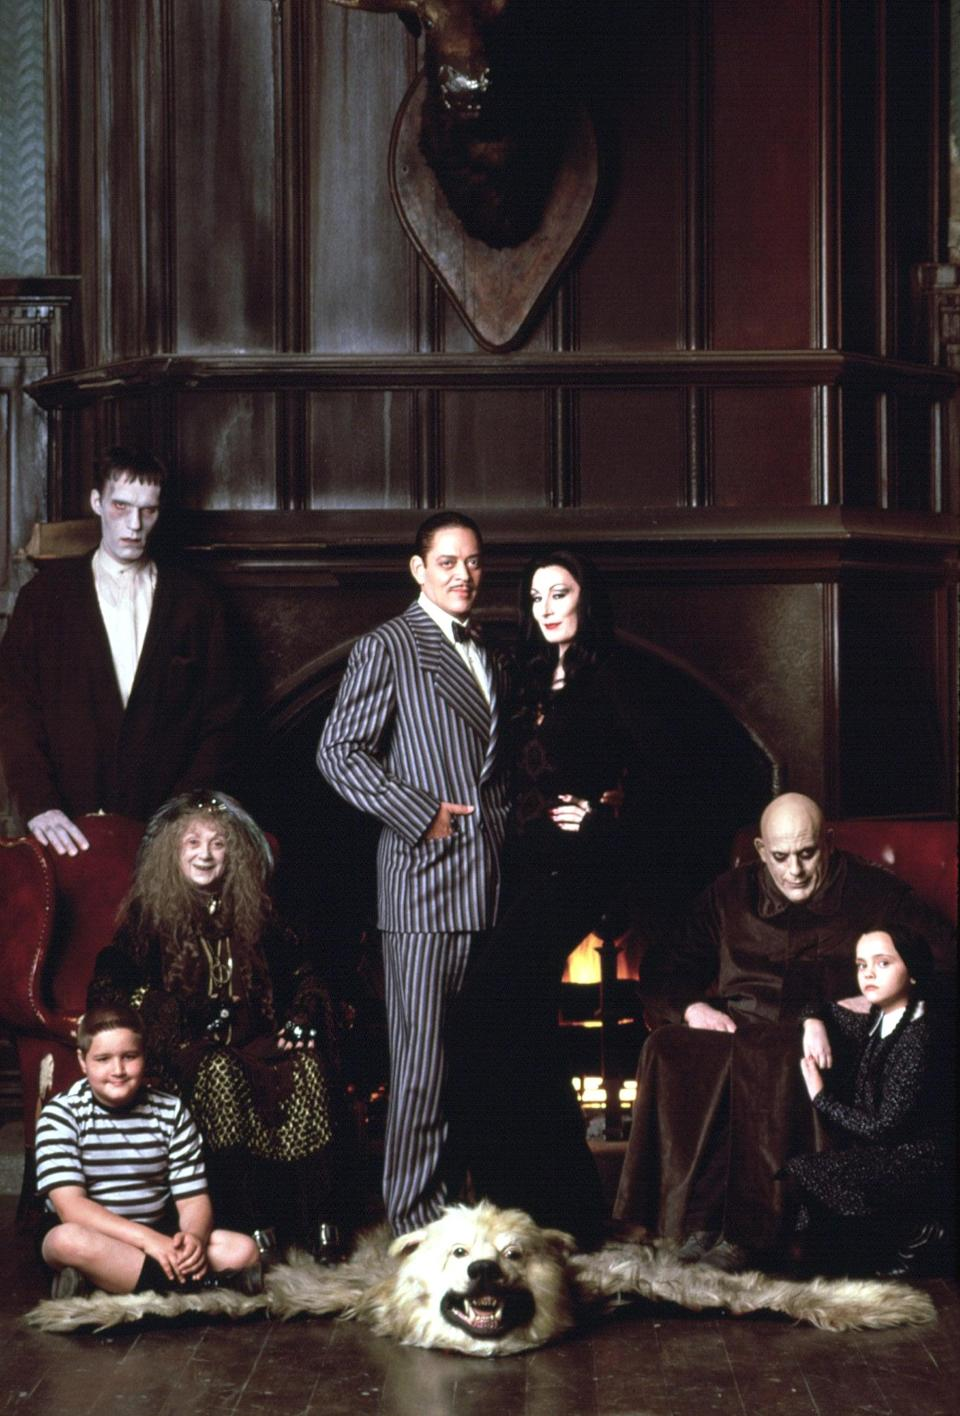 """<p>They may be creepy, mysterious, and spooky, but above all, the Addamses are kooky - making this a fun flick the whole family can watch.</p> <p><a href=""""https://pluto.tv/en/on-demand/movies/the-addams-family-1-1"""" class=""""link rapid-noclick-resp"""" rel=""""nofollow noopener"""" target=""""_blank"""" data-ylk=""""slk:Watch The Addams Family on Pluto TV now!"""">Watch <strong>The Addams Family</strong> on Pluto TV now!</a></p>"""